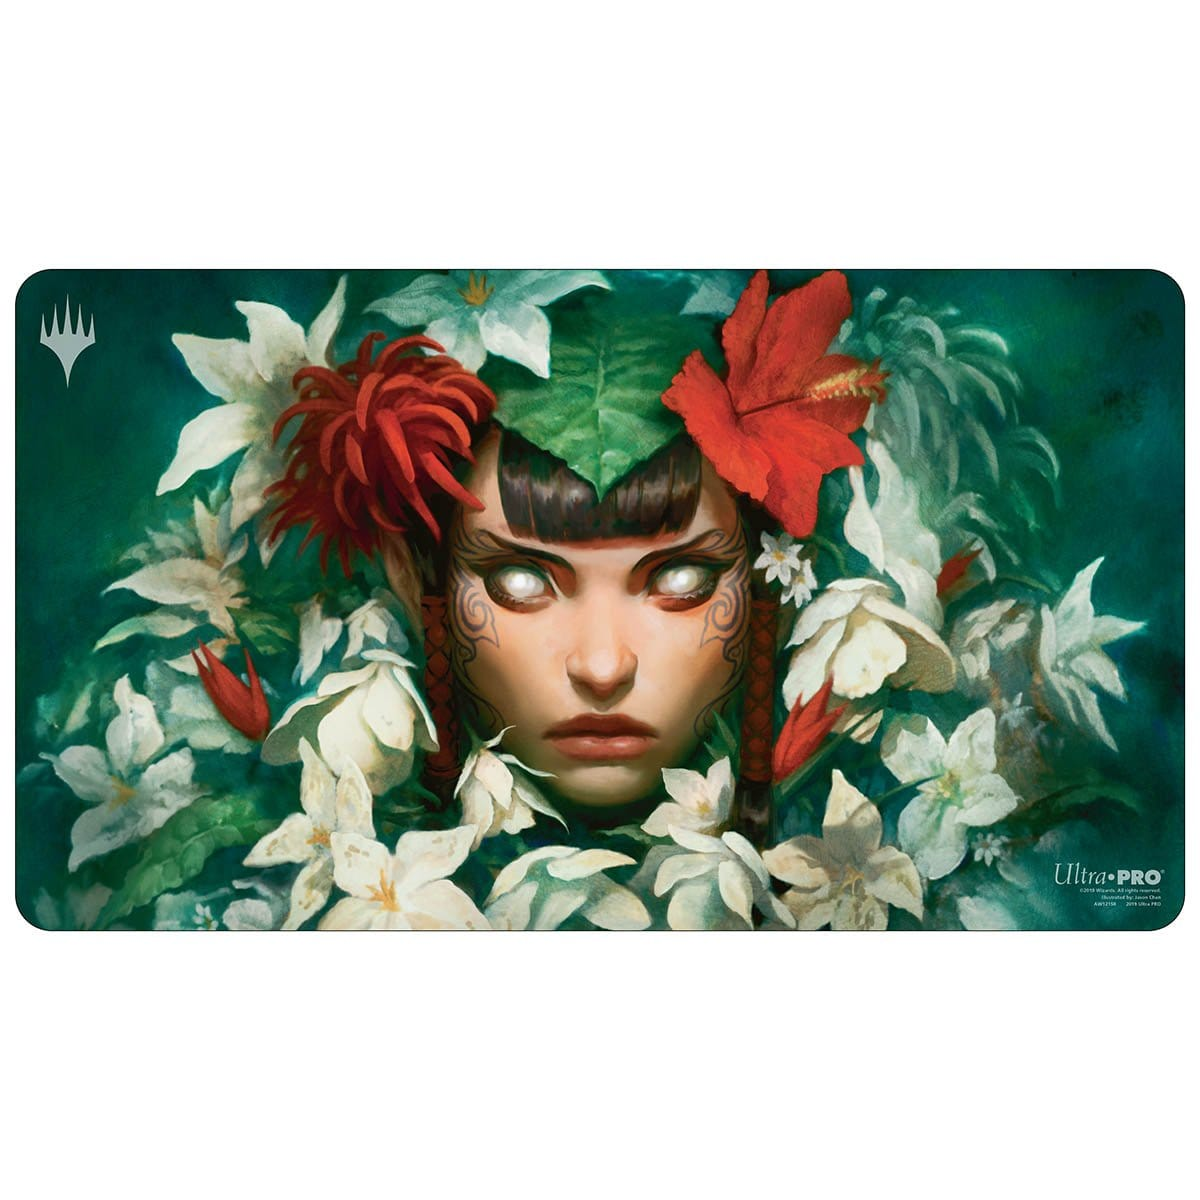 Mayael the Anima Playmat - Playmat - Original Magic Art - Accessories for Magic the Gathering and other card games